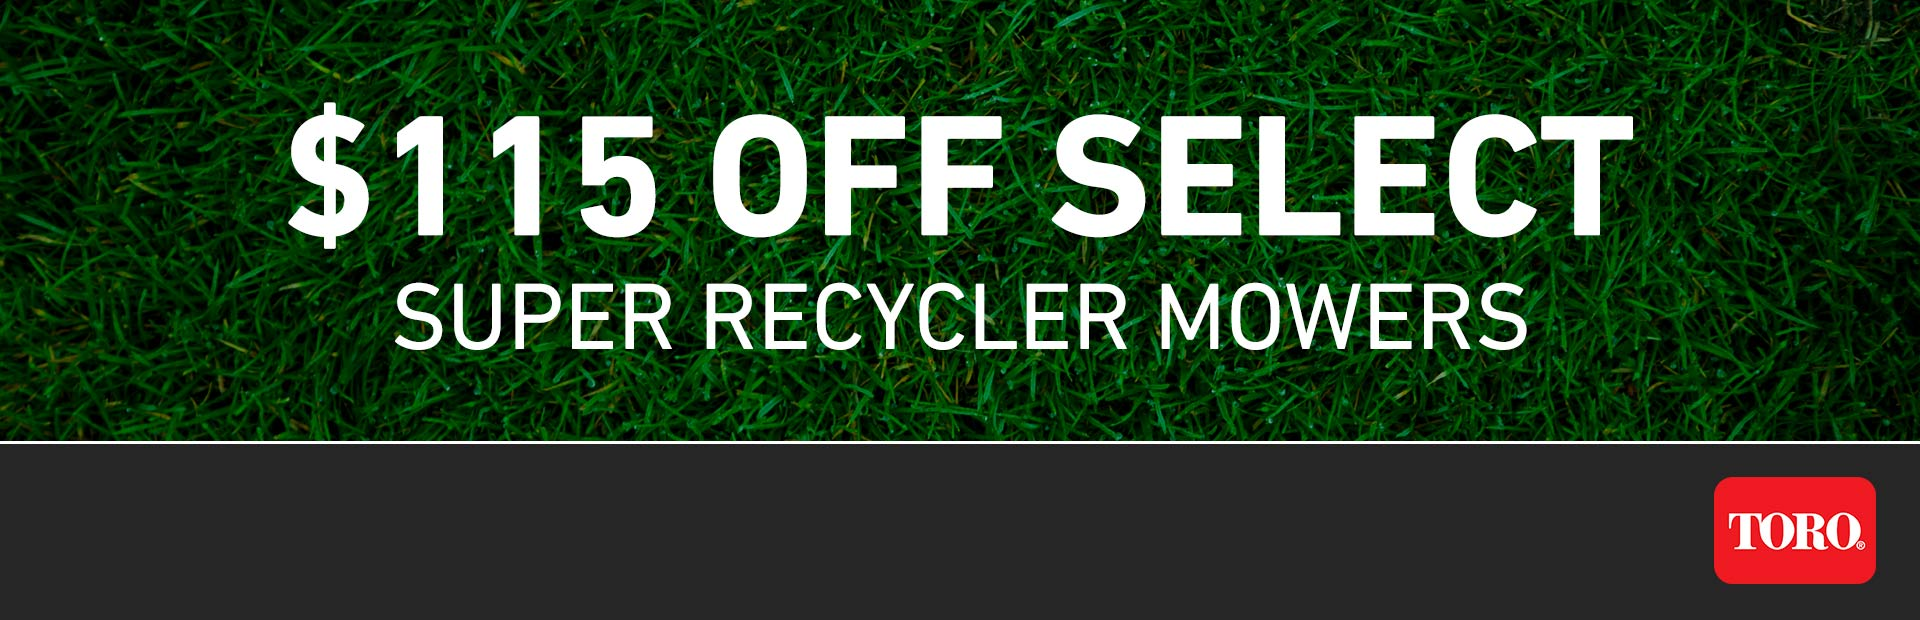 Toro: $115 CAD OFF Select Super Recycler Mowers